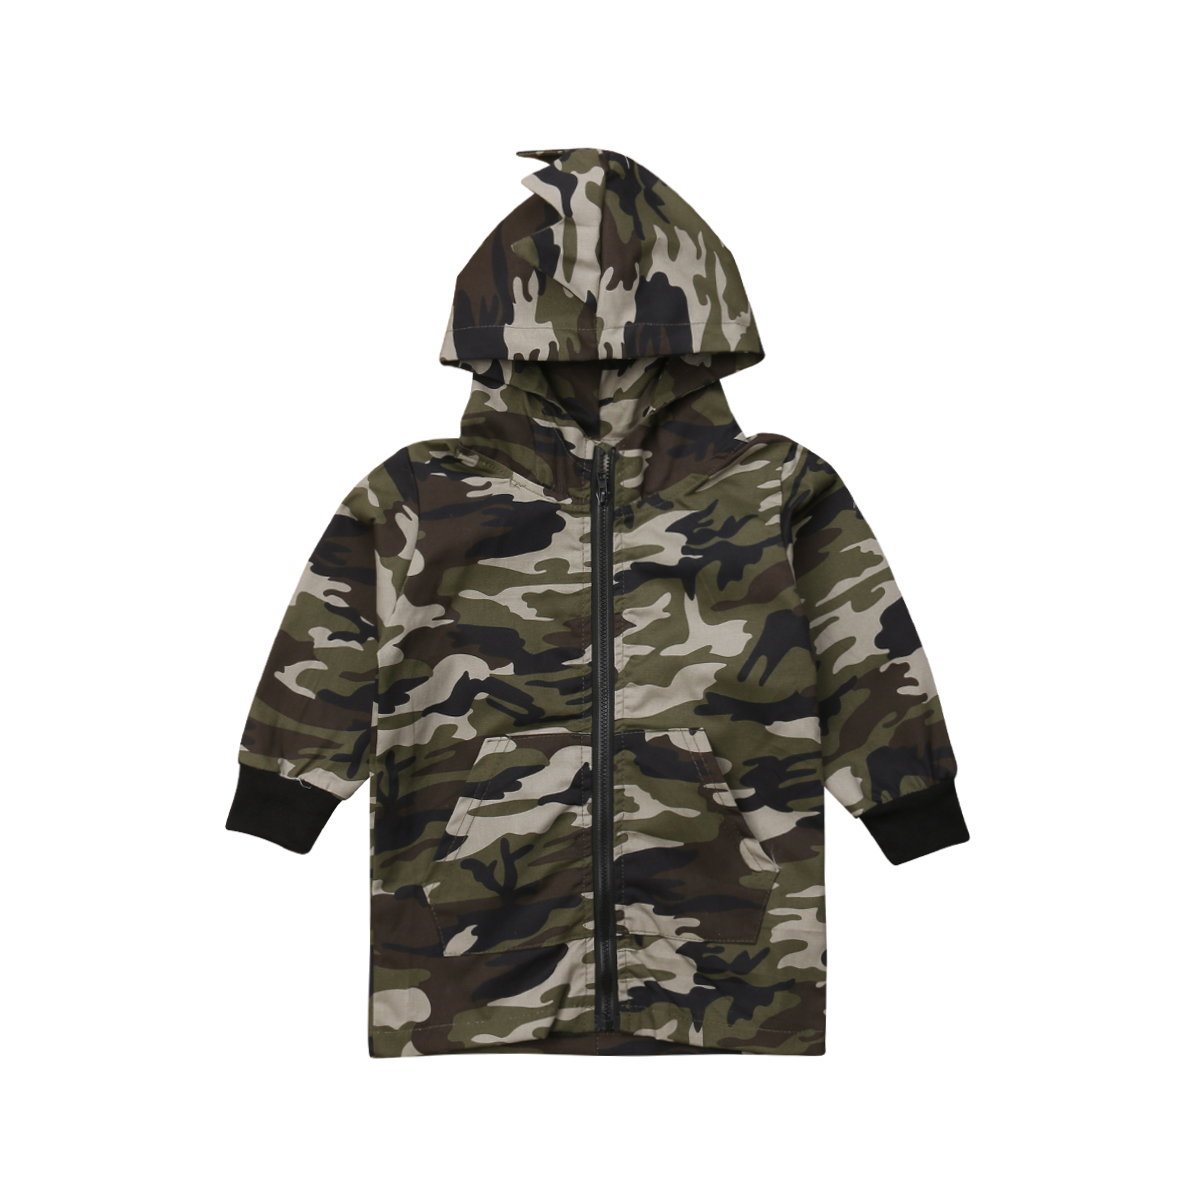 Jackets 2019 New Brand Toddler Kids Baby Boys Camouflage Dinosaur Coat  Zippers Long Sleeves Top Hooded Jackets